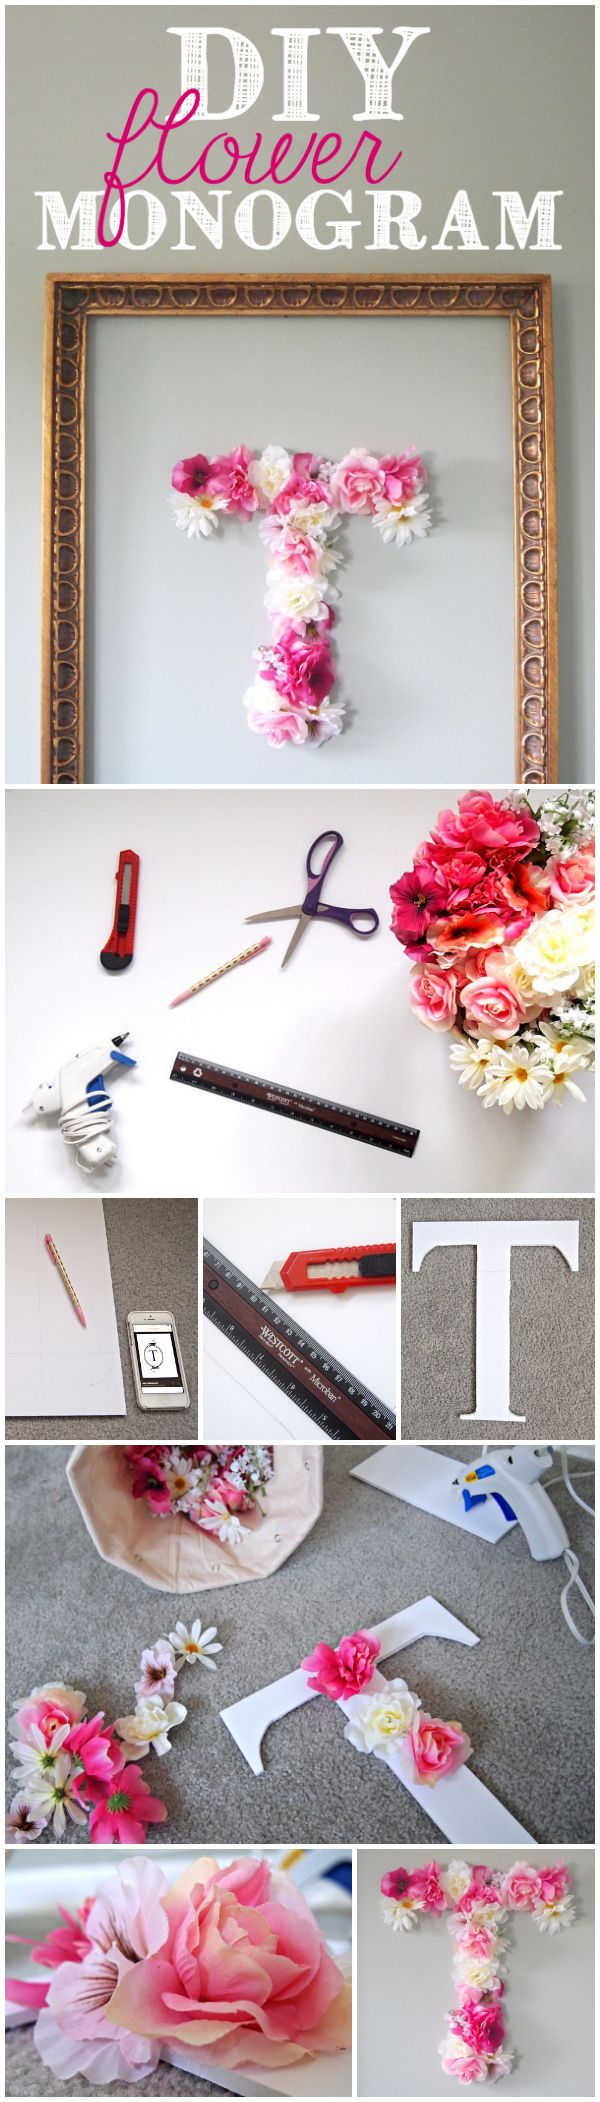 Step by Step guide for DIY Faux Flower Monogram - Decoist